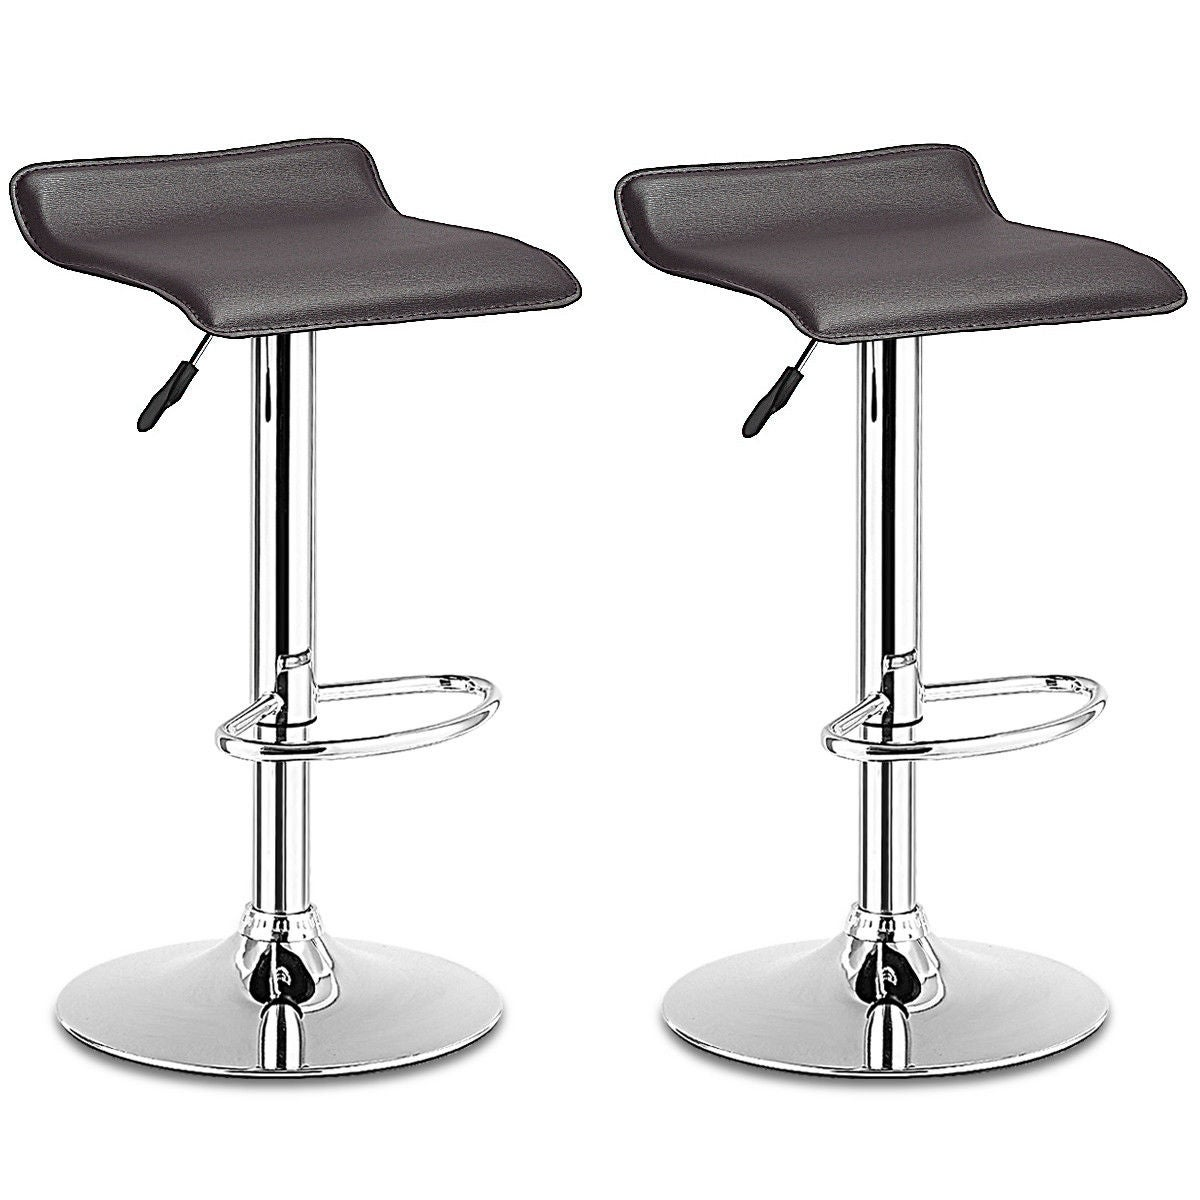 Costway Set Of 2 Swivel Bar Stools Adjustable PU Leather Backless Dining Chair Brown